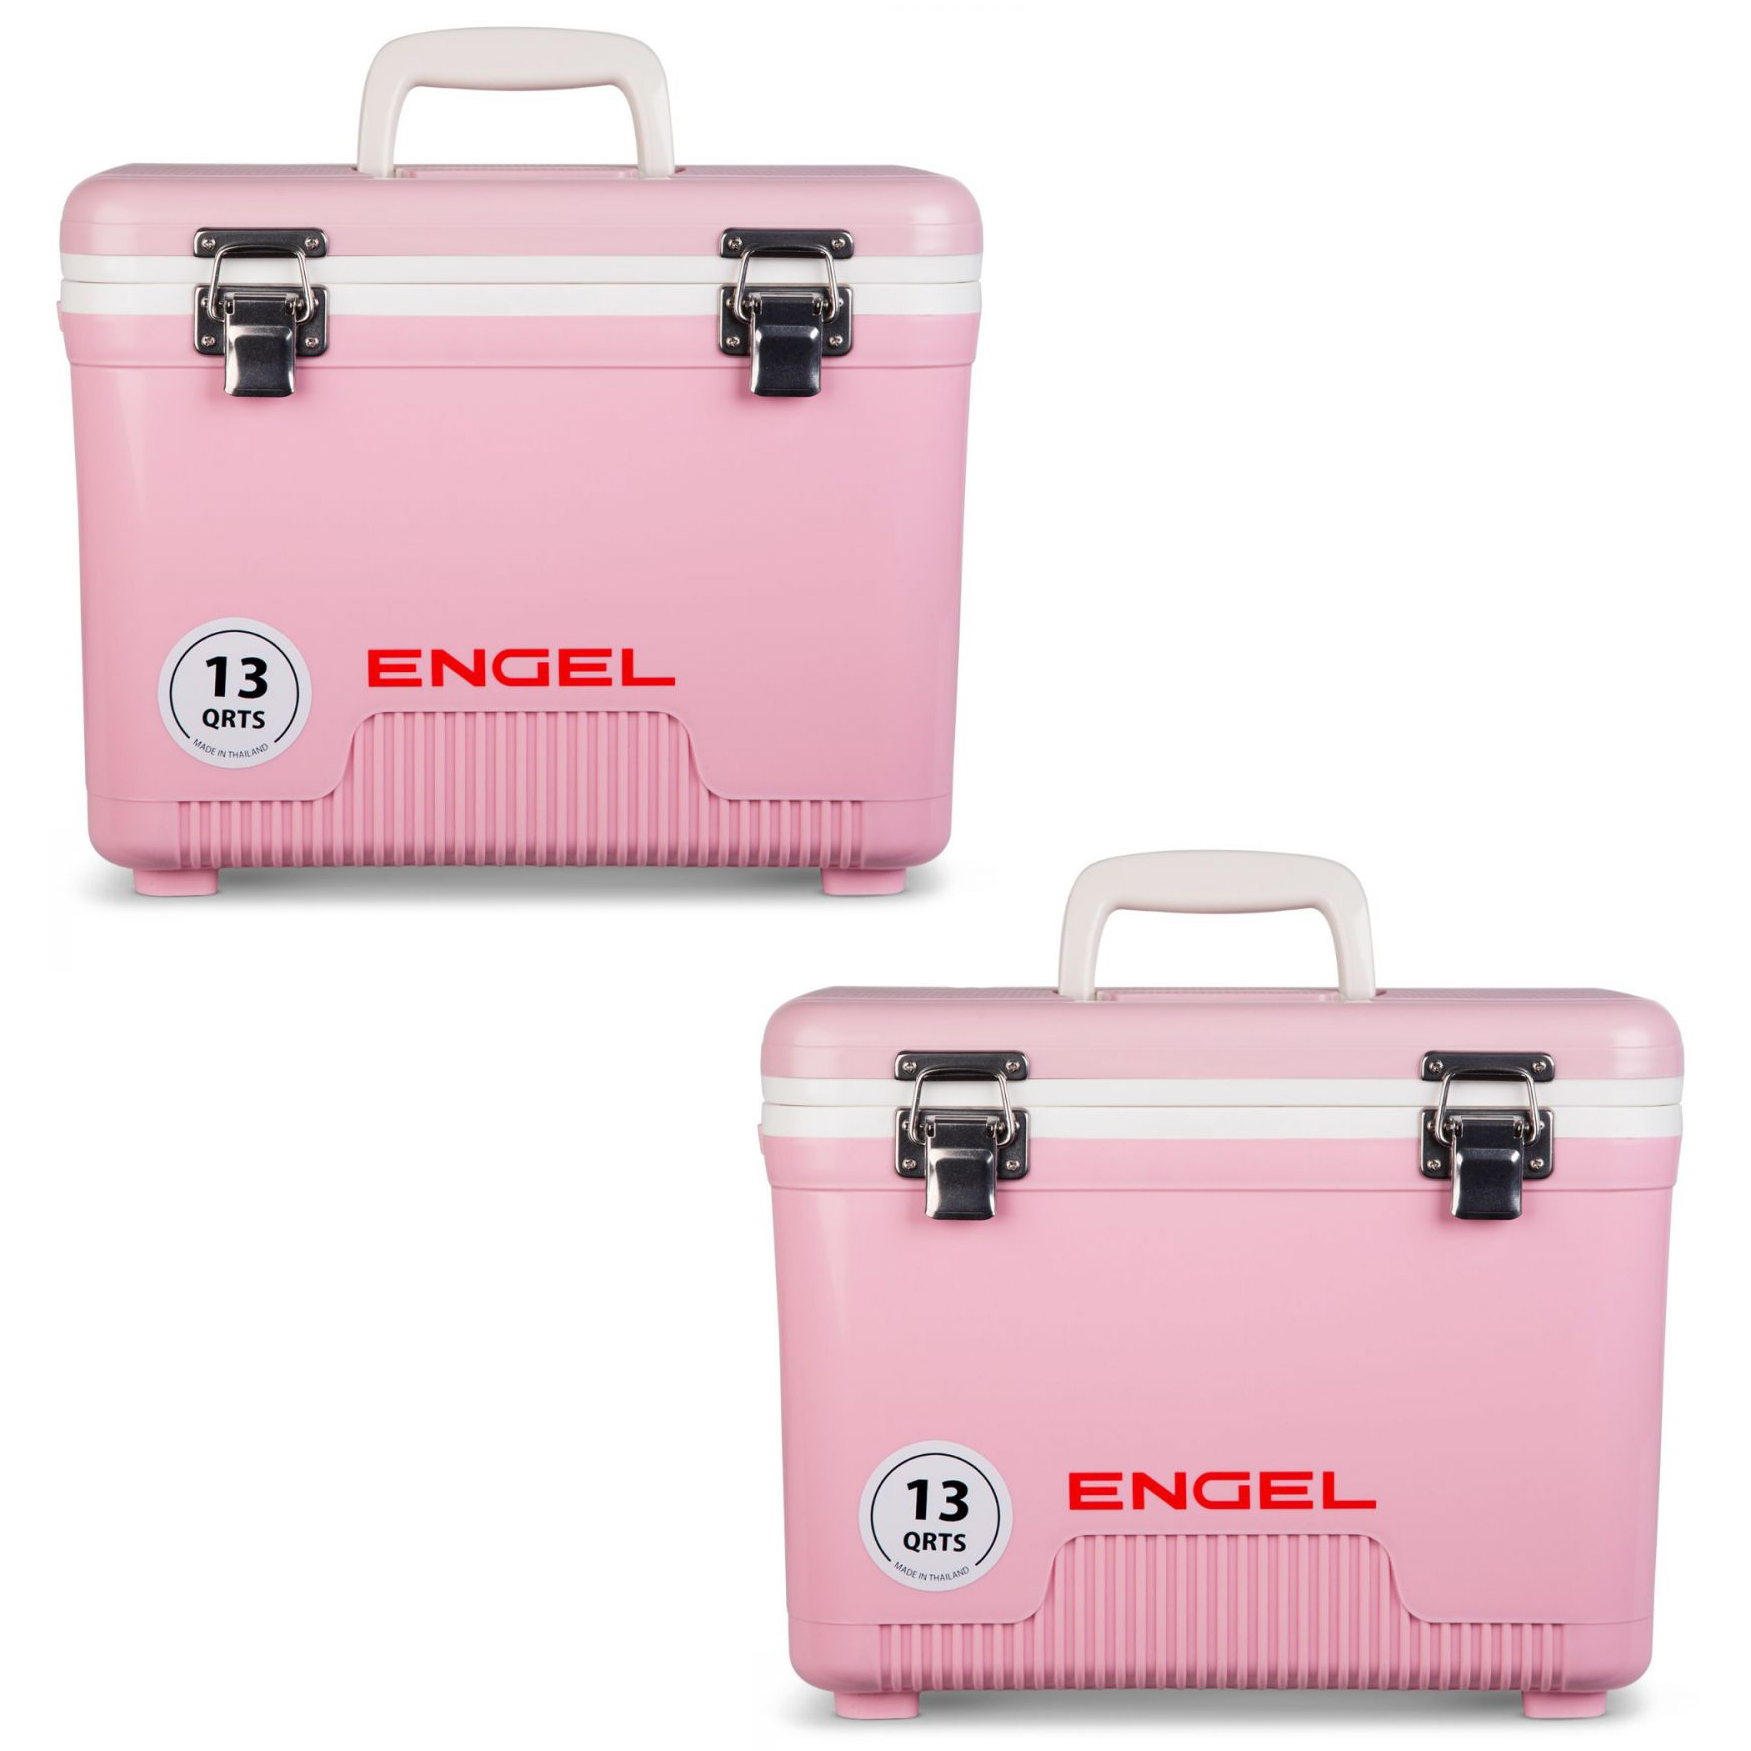 Engel 13 Quart Compact Durable Leak Proof Outdoor Dry Box Cooler, Pink (2 Pack)